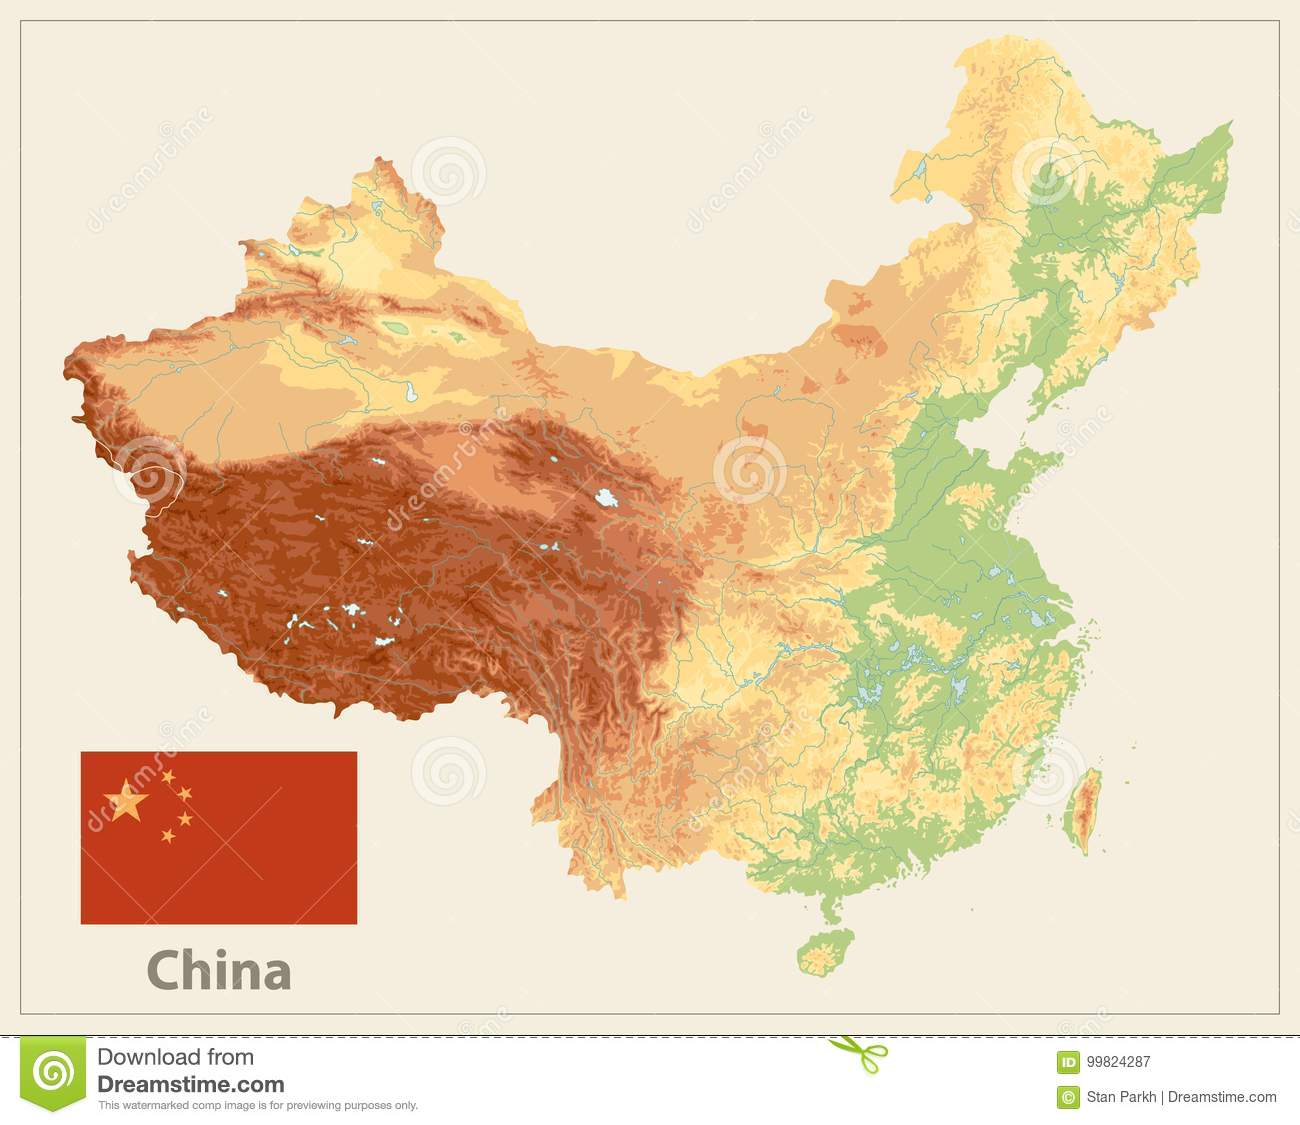 on china physical map